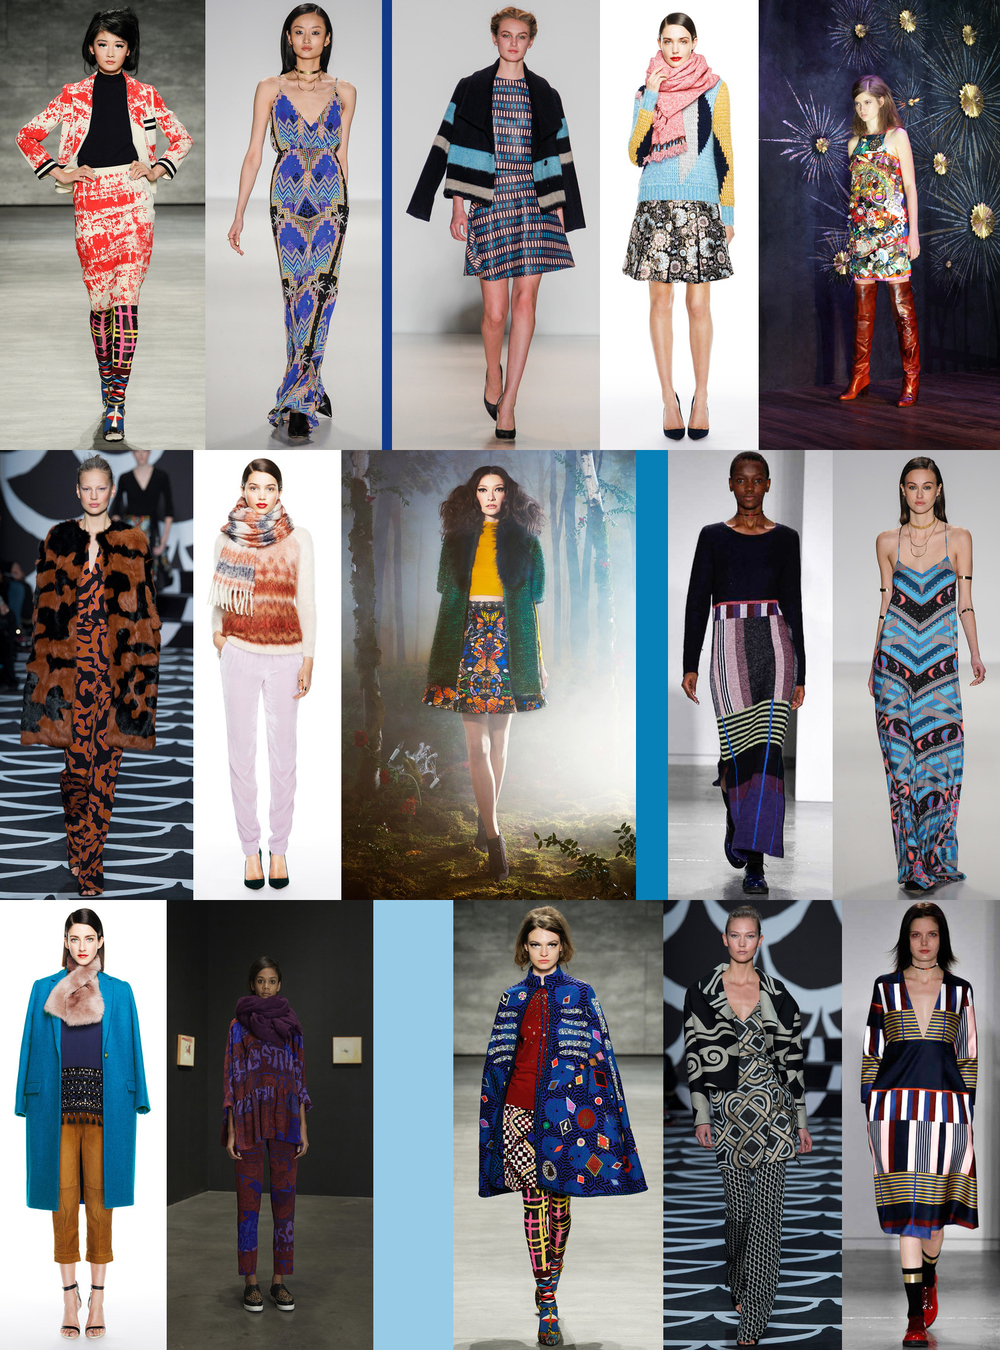 Liz Nehdi's favourite looks from NYFW